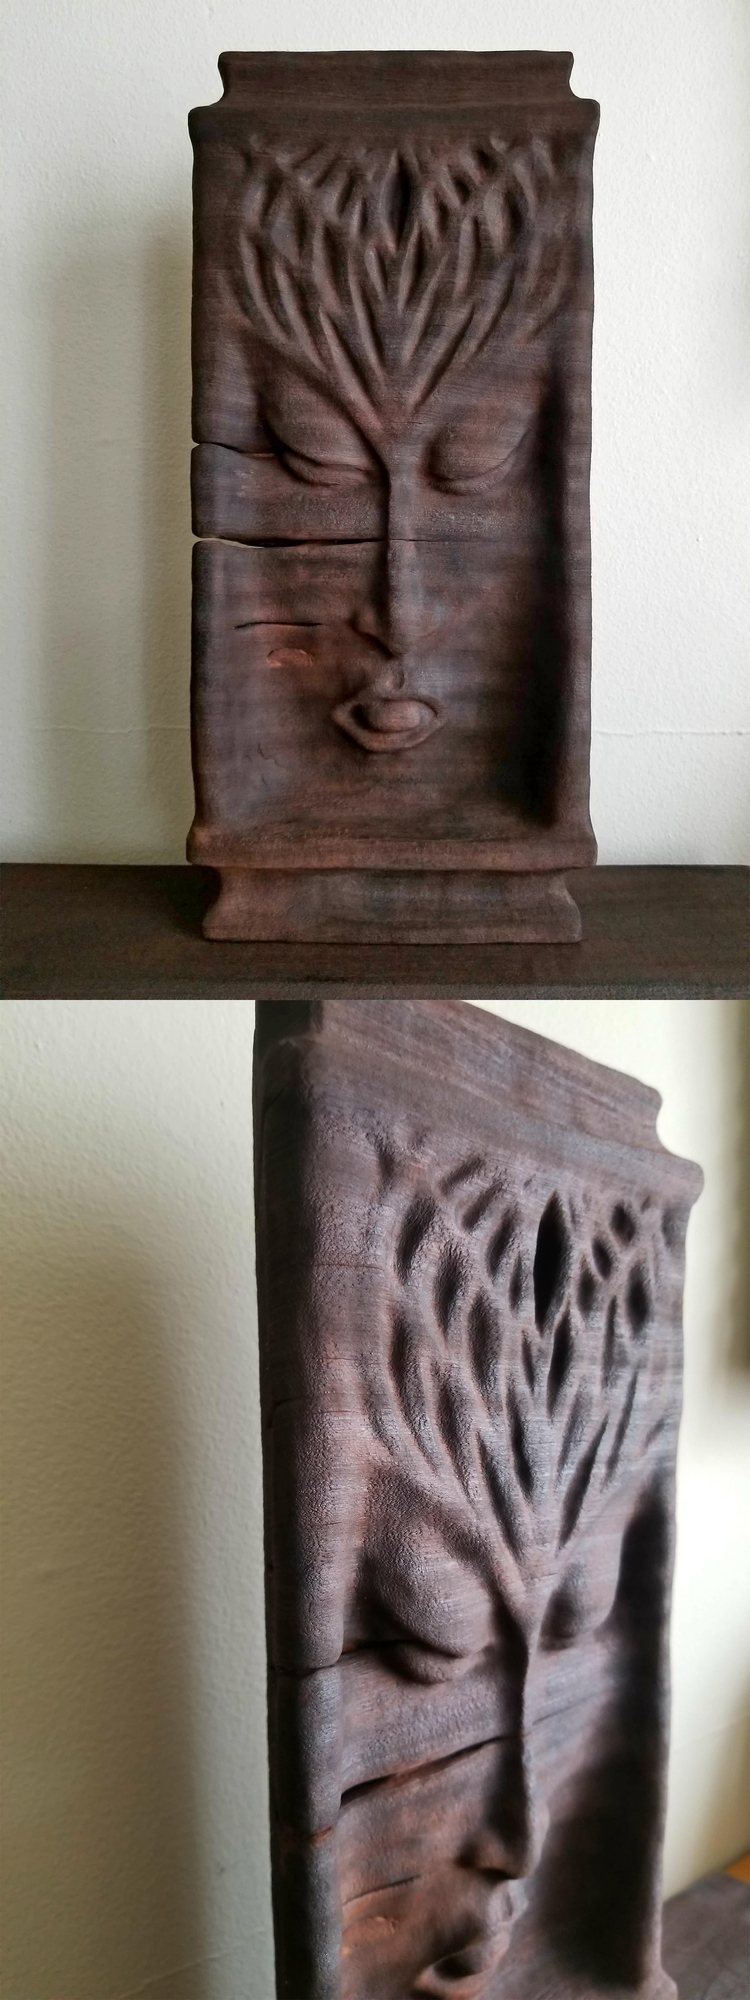 Ayahuasca Shrine $960.00 wonder - isnervision | ello